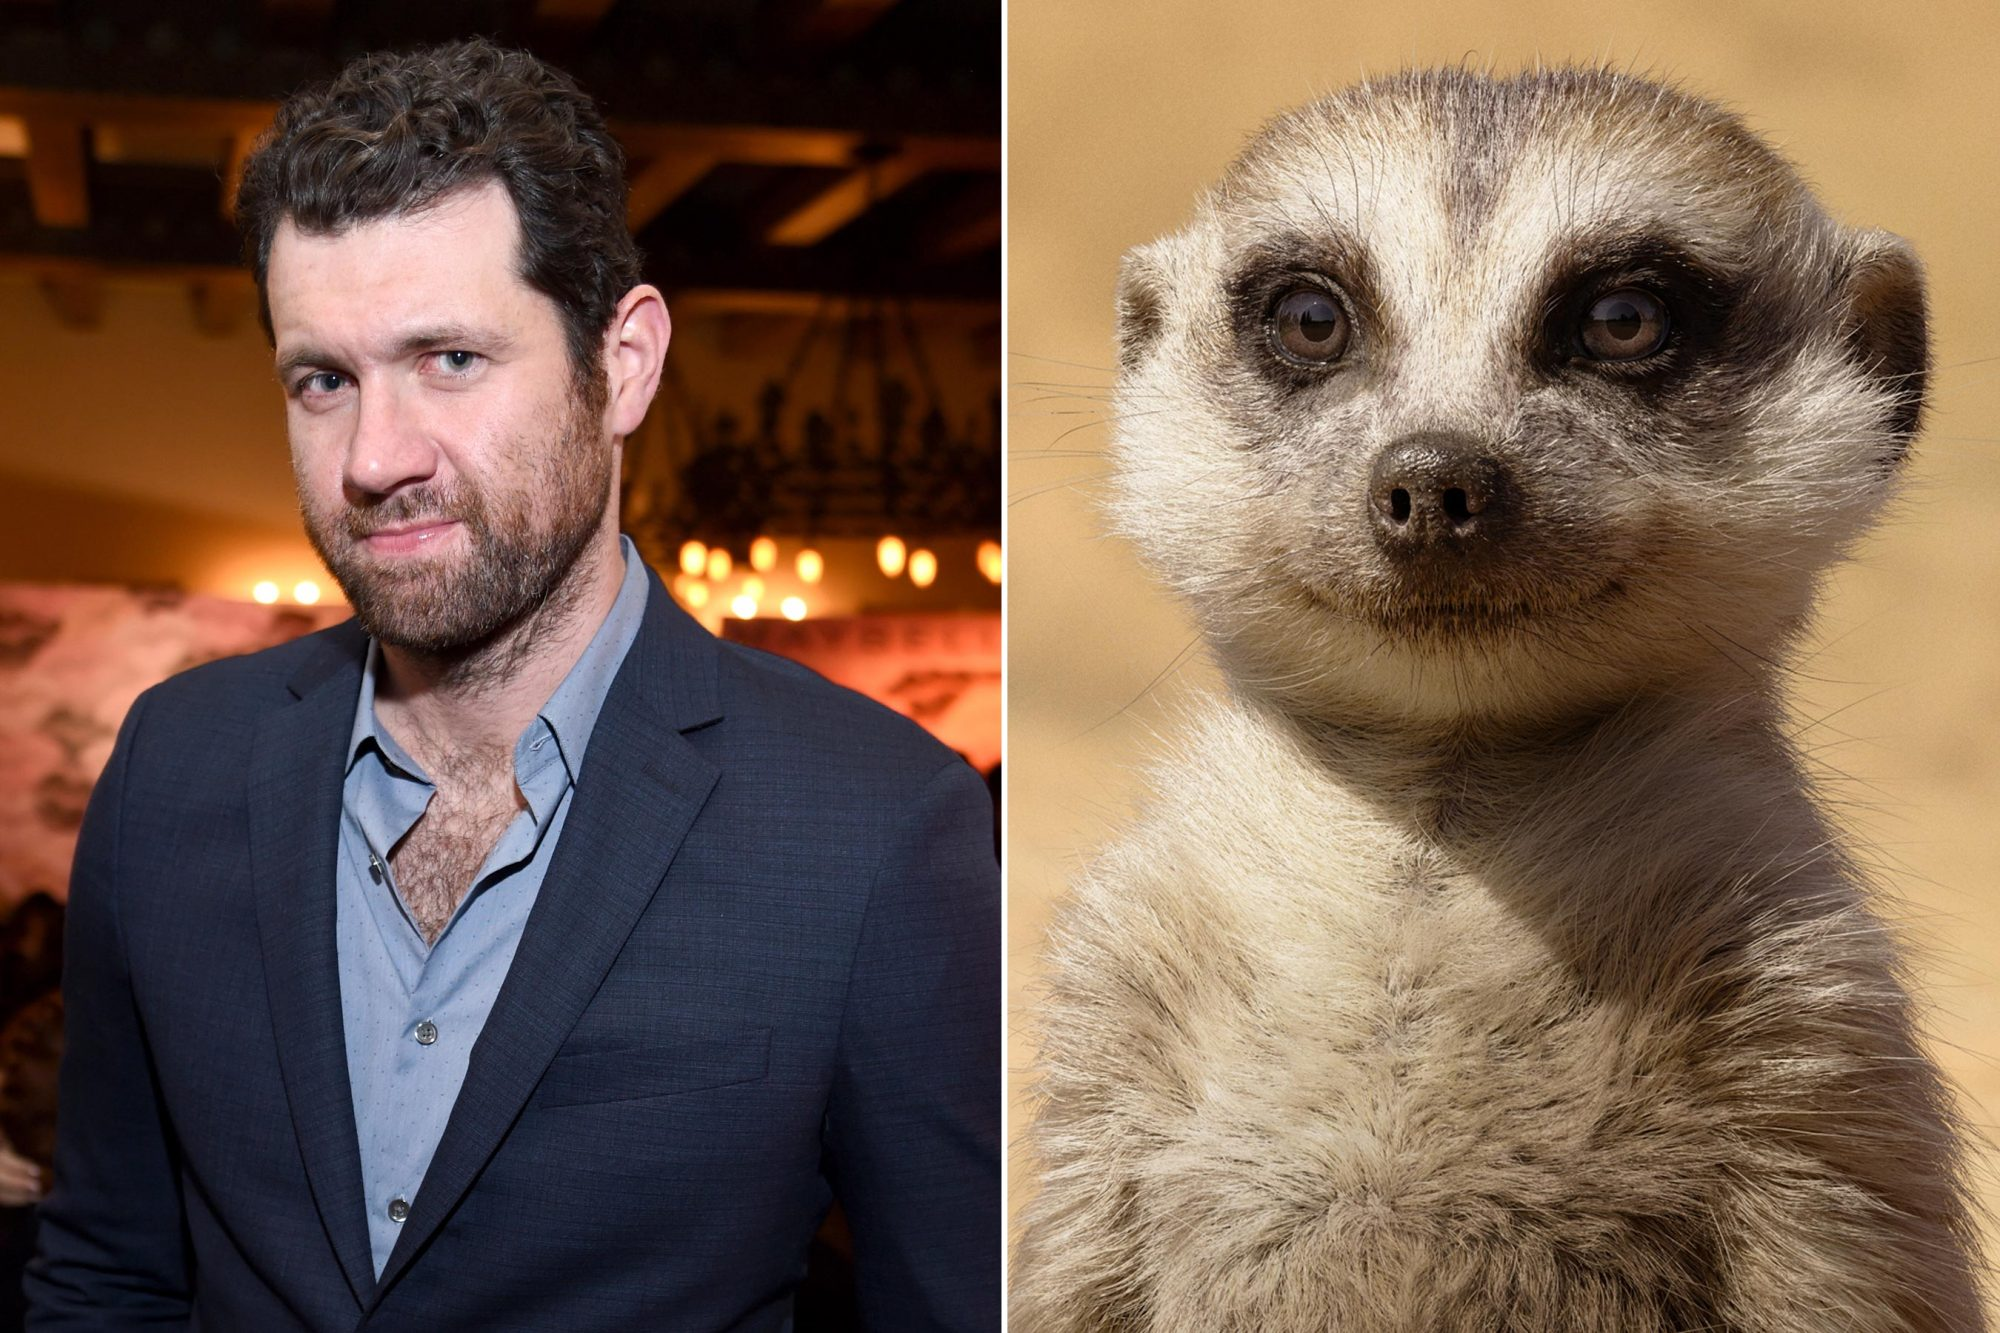 The Lion King Billy Eichner as Timon Actor Billy Eichner attends the Entertainment Weekly Celebration of SAG Award Nominees sponsored by Maybelline New York at Chateau Marmont on January 28, 2017 in Los Angeles, California. (Photo by Dimitrios Kambouris/Getty Images for Entertainment Weekly)